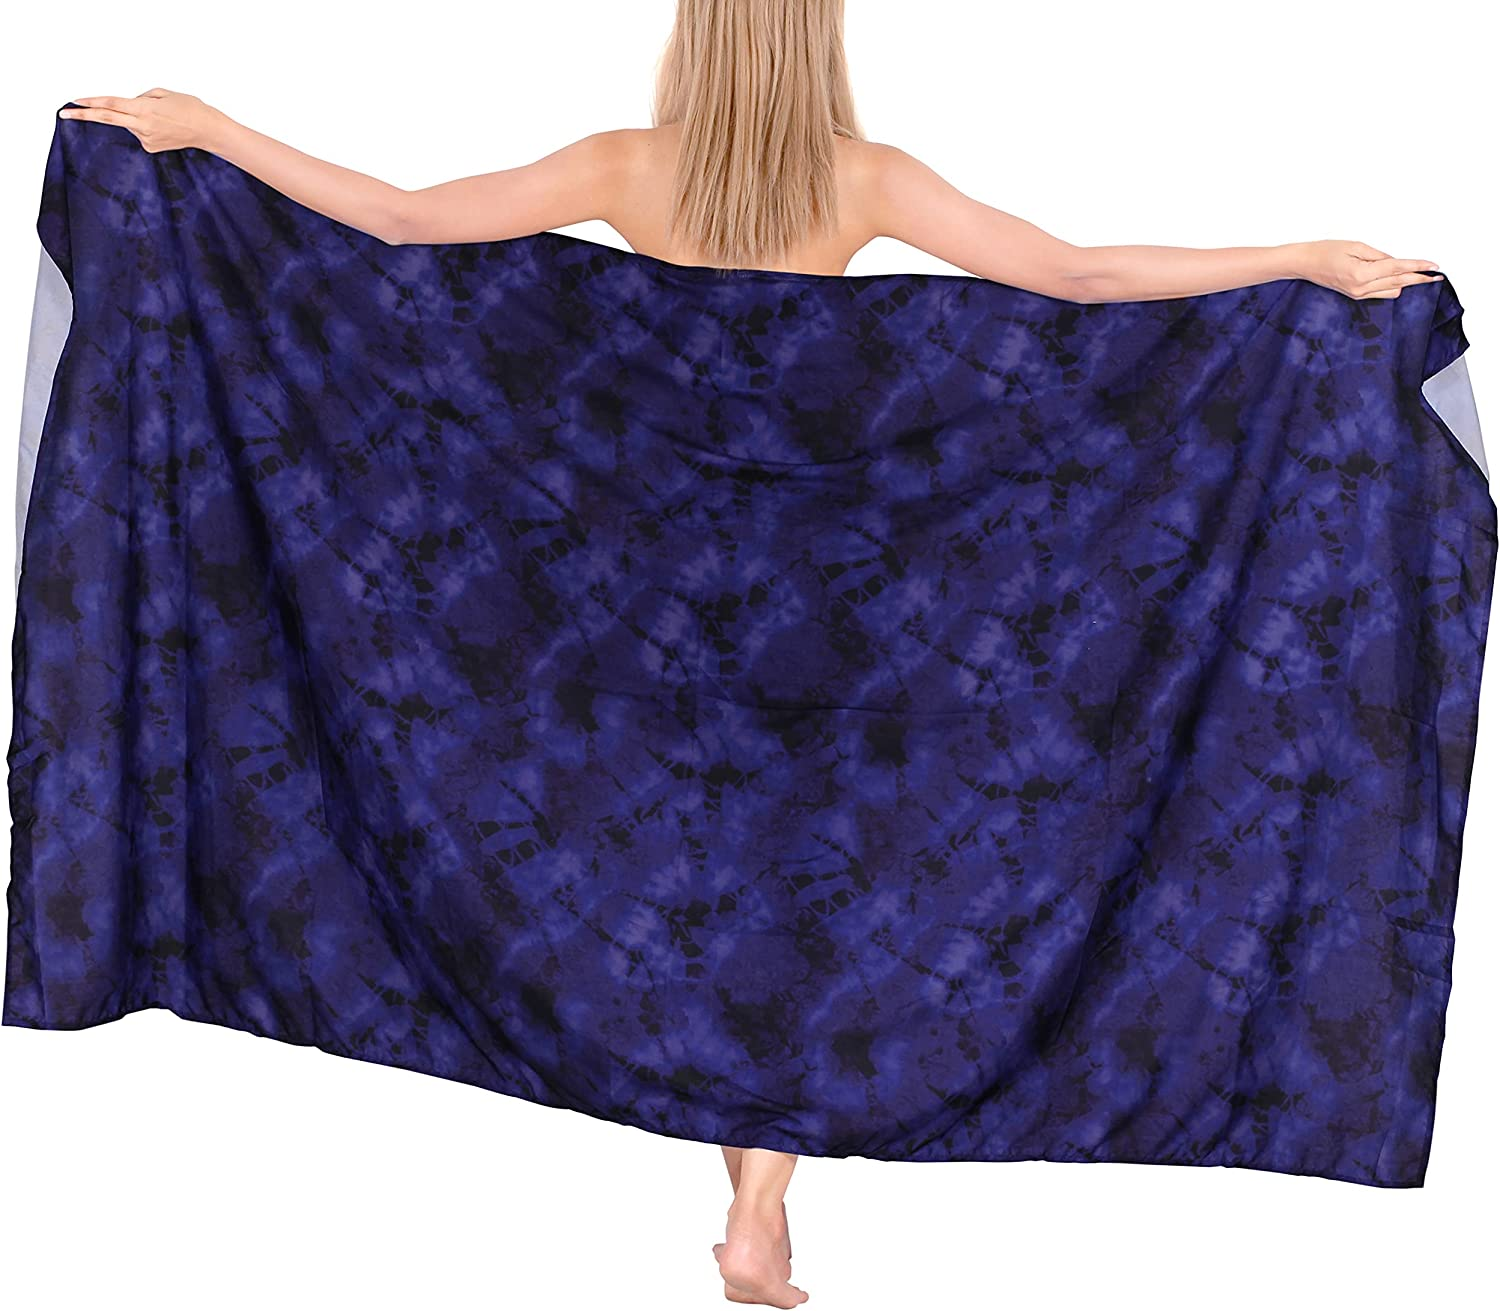 HAPPY BAY Women's Swimsuit Cover Ups Tie Dye Print Sarongs for The Beach Wrap